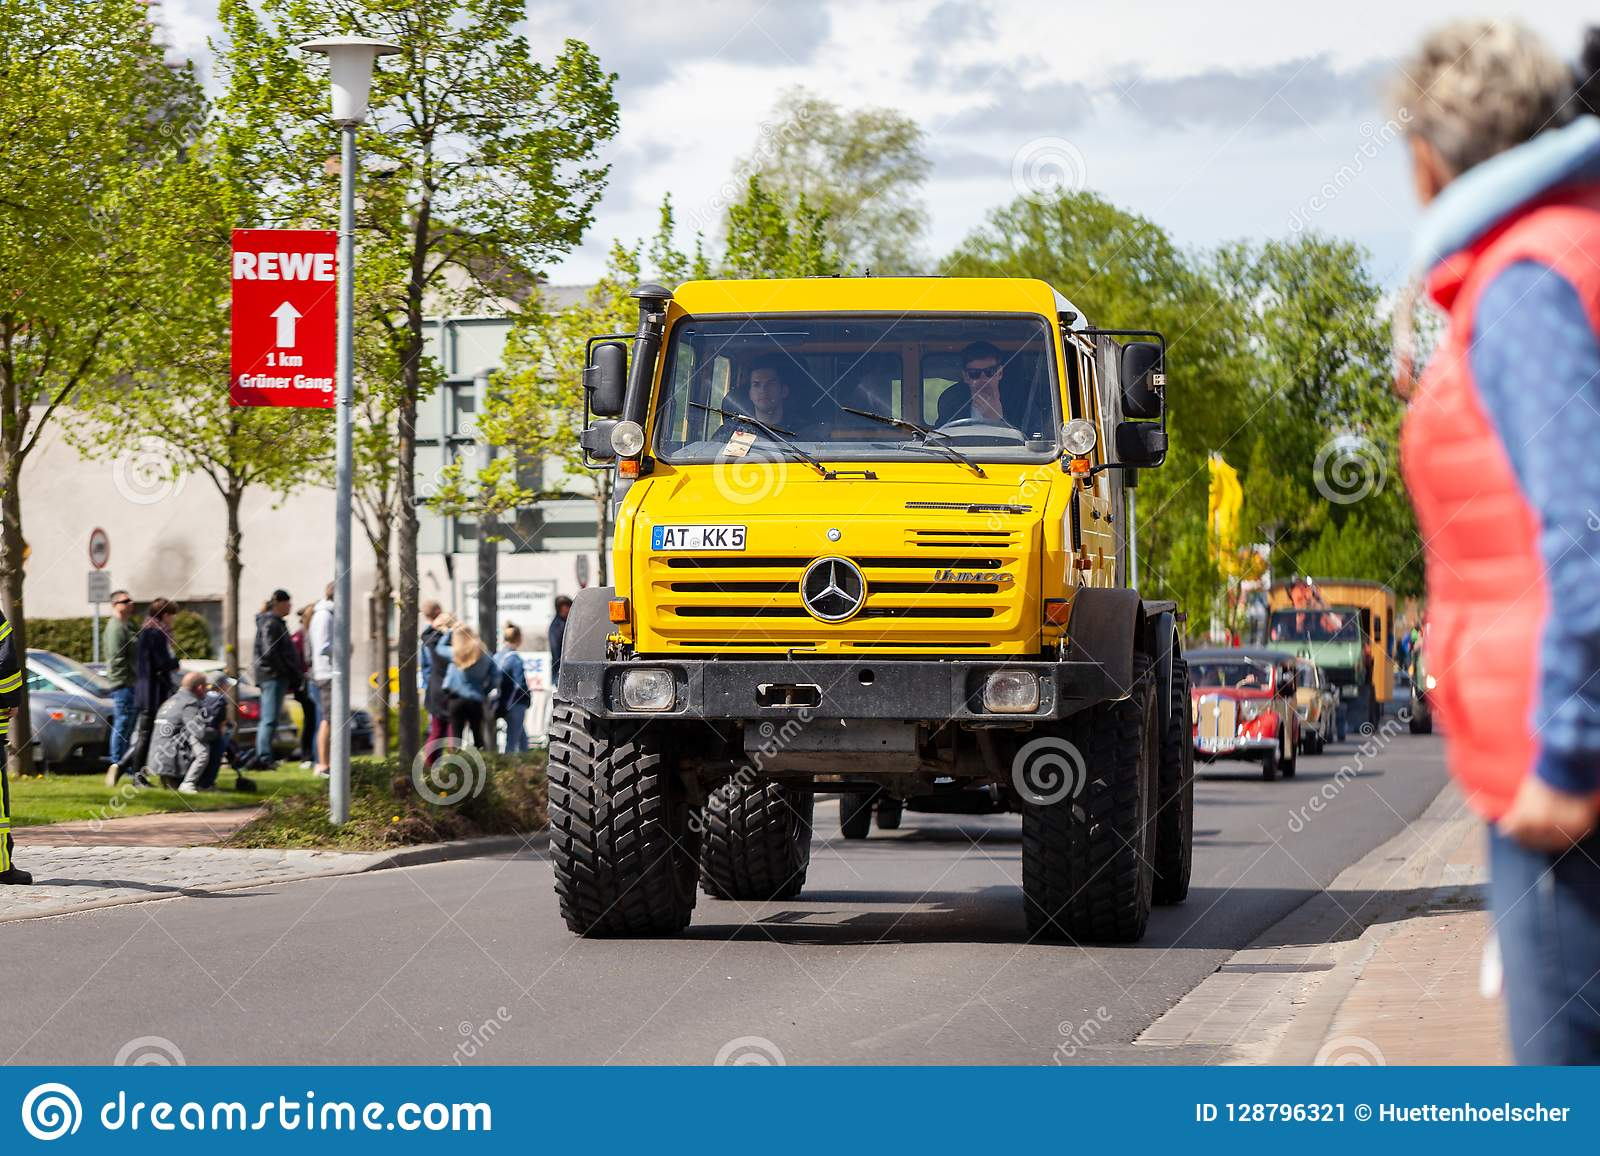 Mercedes Benz Unimog Drives On Street Editorial Photo Image Of